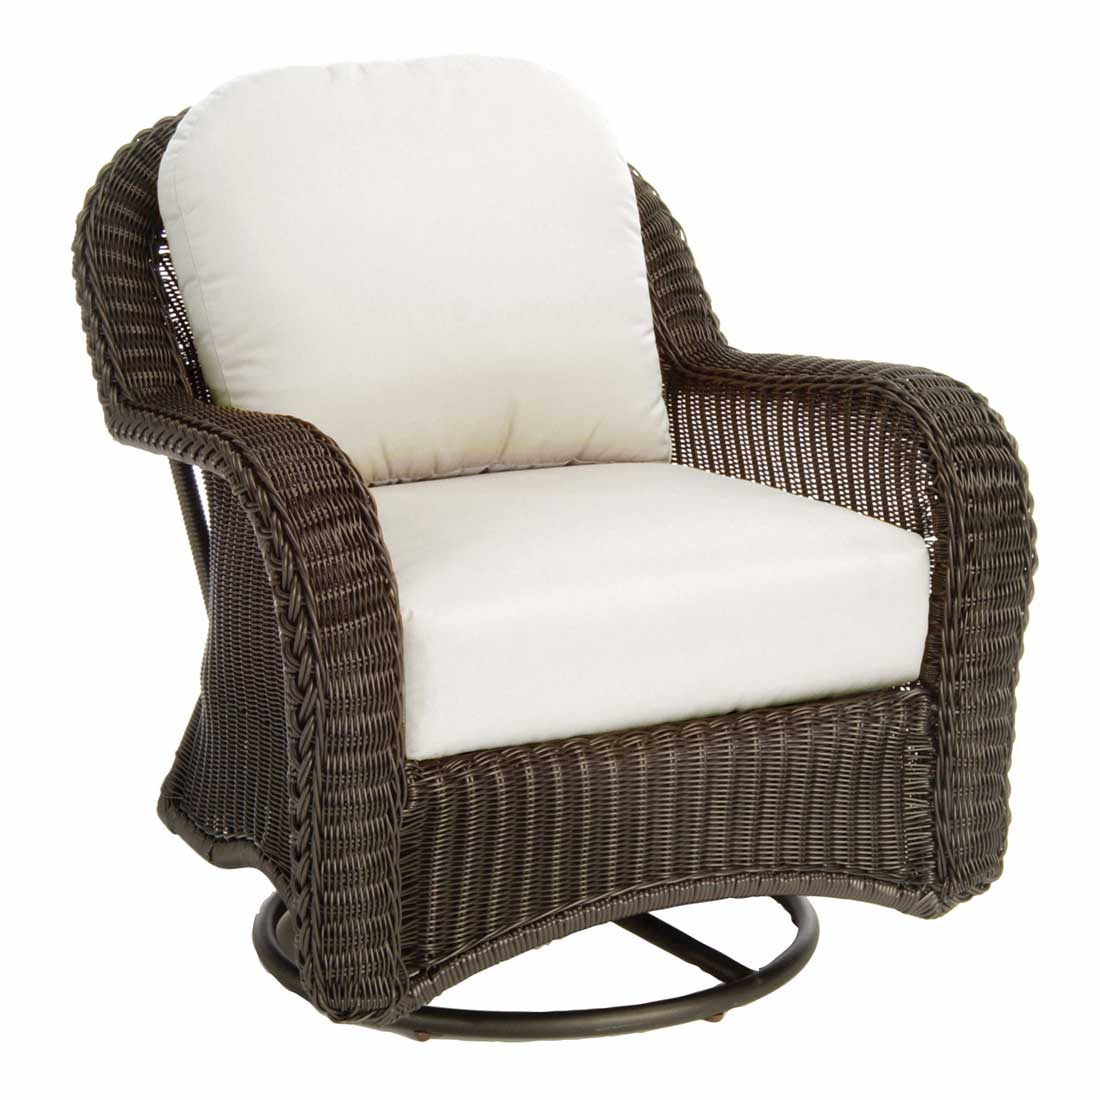 Classic wicker swivel glider